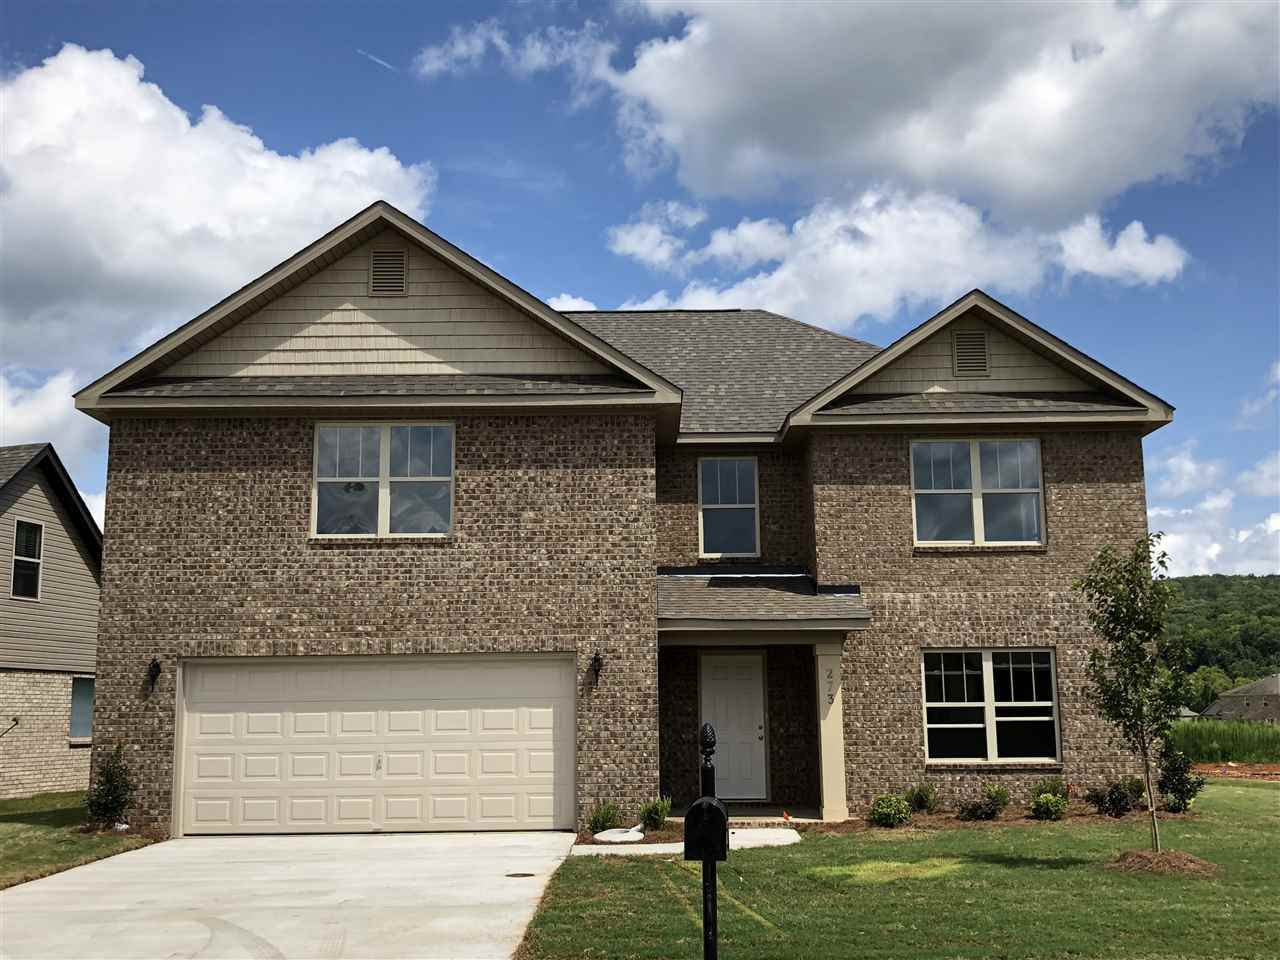 Single Family for Sale at 273 Fenrose Drive Harvest, Alabama 35749 United States